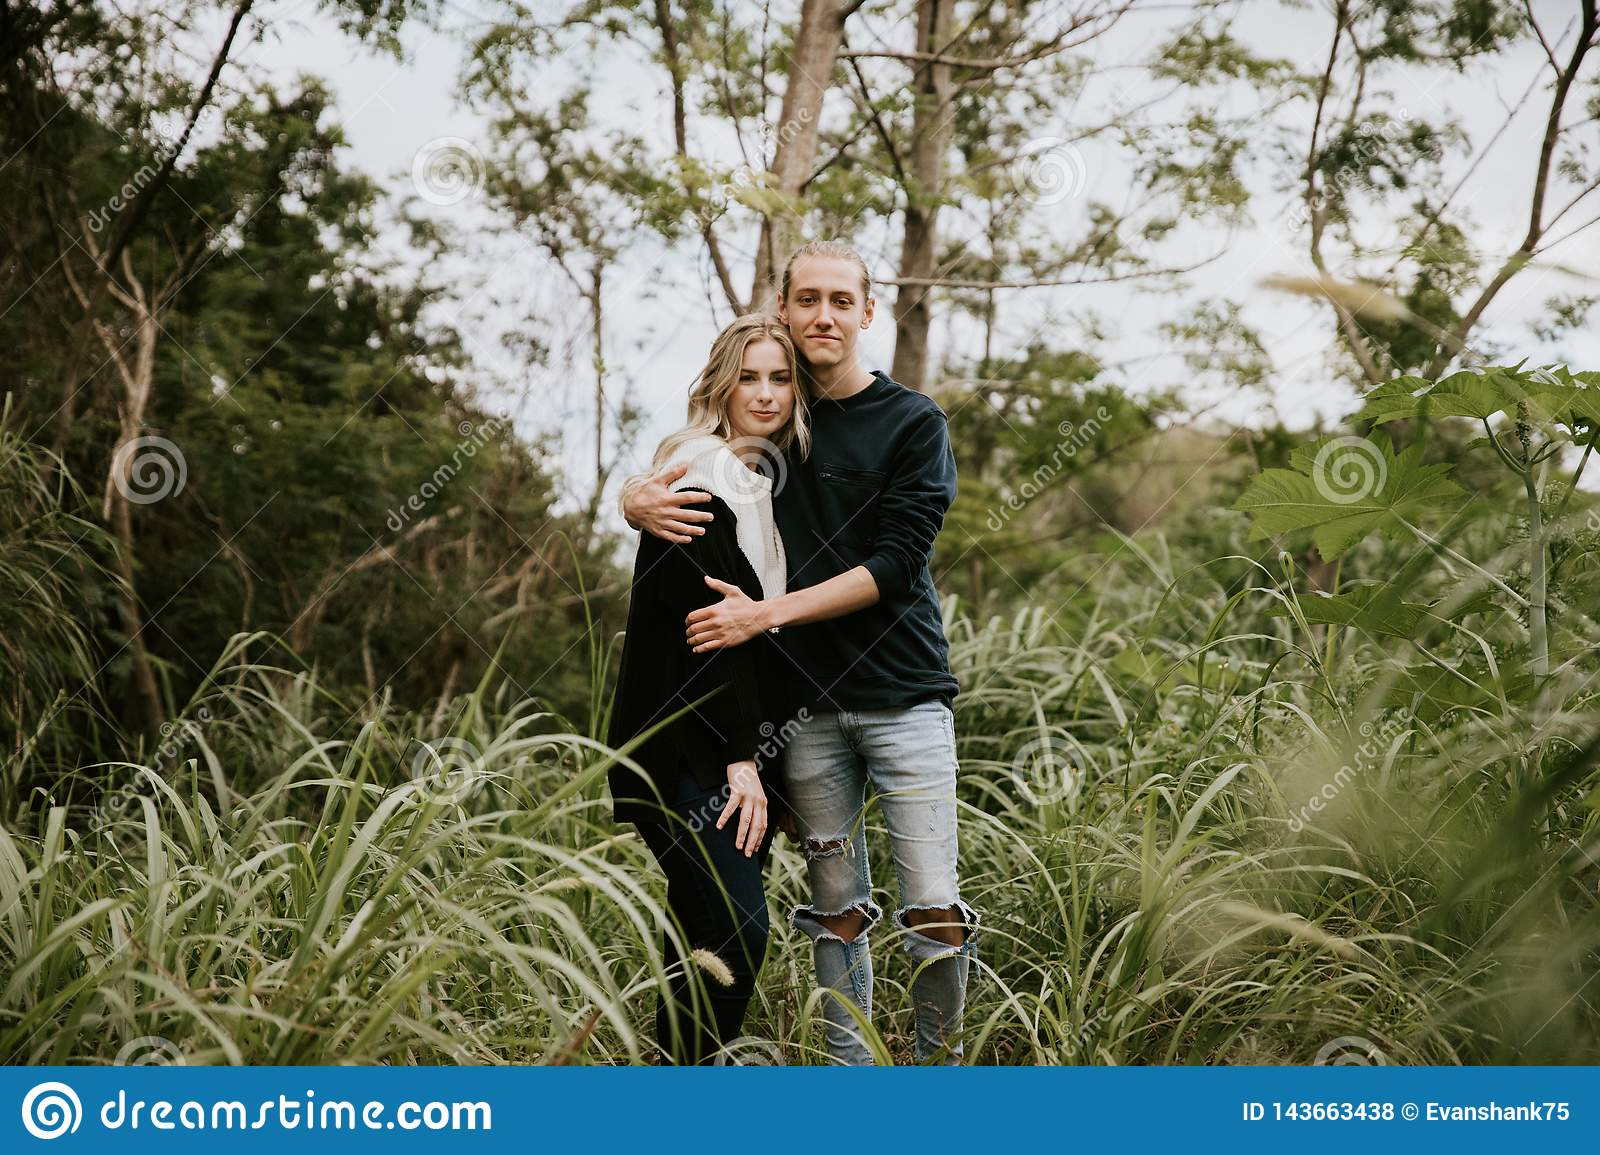 Cute Young Attractive Dating Couple Looking, Smiling, and Laughing in the Dense  Green Tropical Forest Jungle